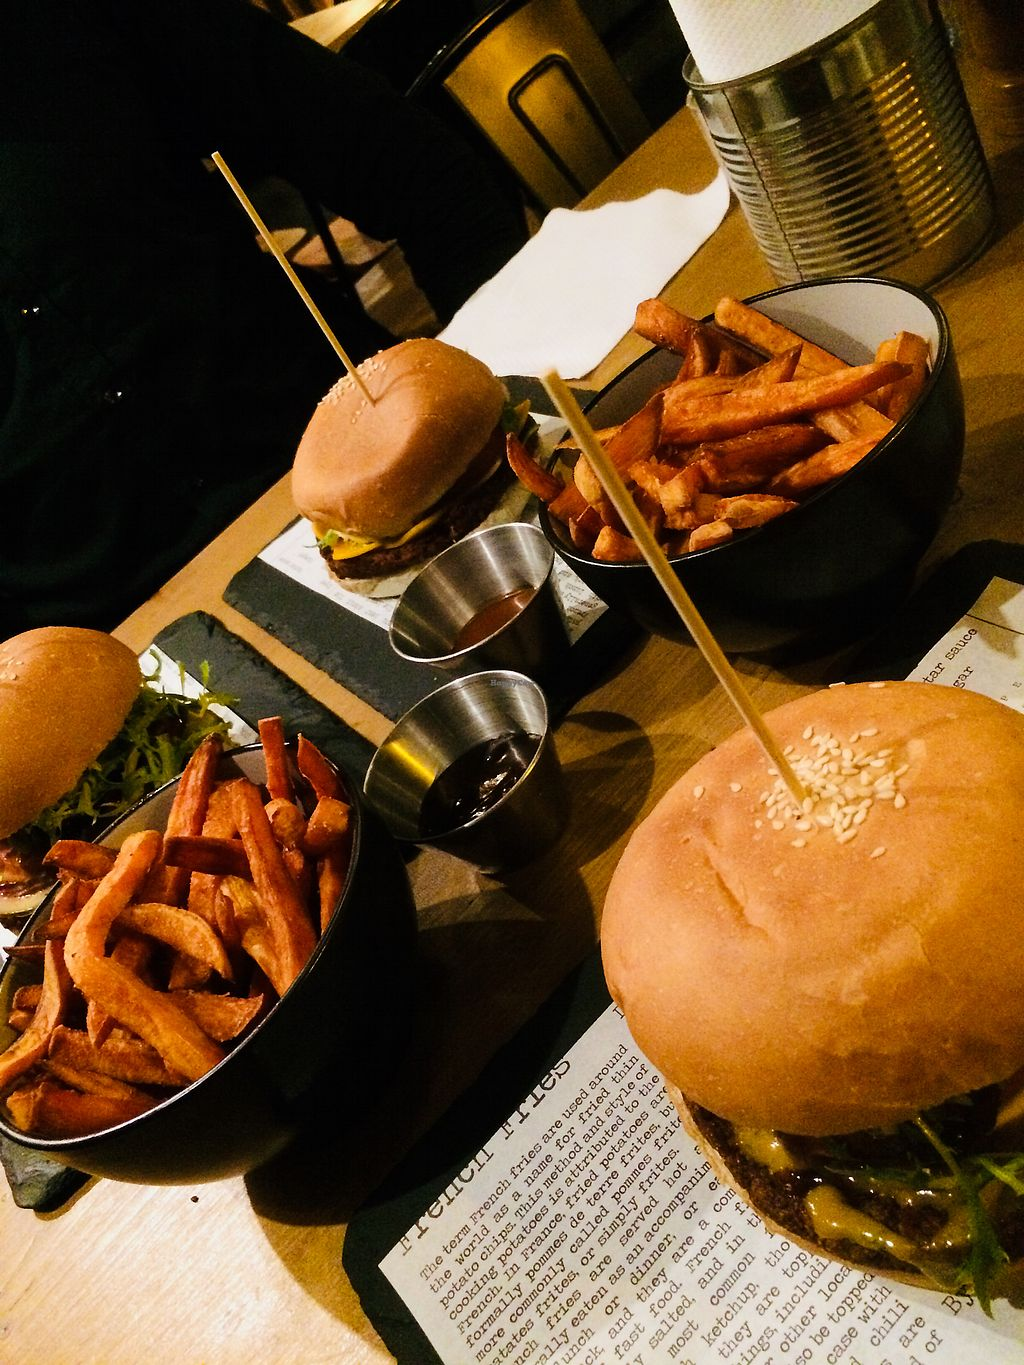 """Photo of The Lucky Bun  by <a href=""""/members/profile/J%C3%A4n%C3%B6nen"""">Jänönen</a> <br/>Vegan burgers and sweet potato fries <br/> February 22, 2018  - <a href='/contact/abuse/image/100310/362505'>Report</a>"""